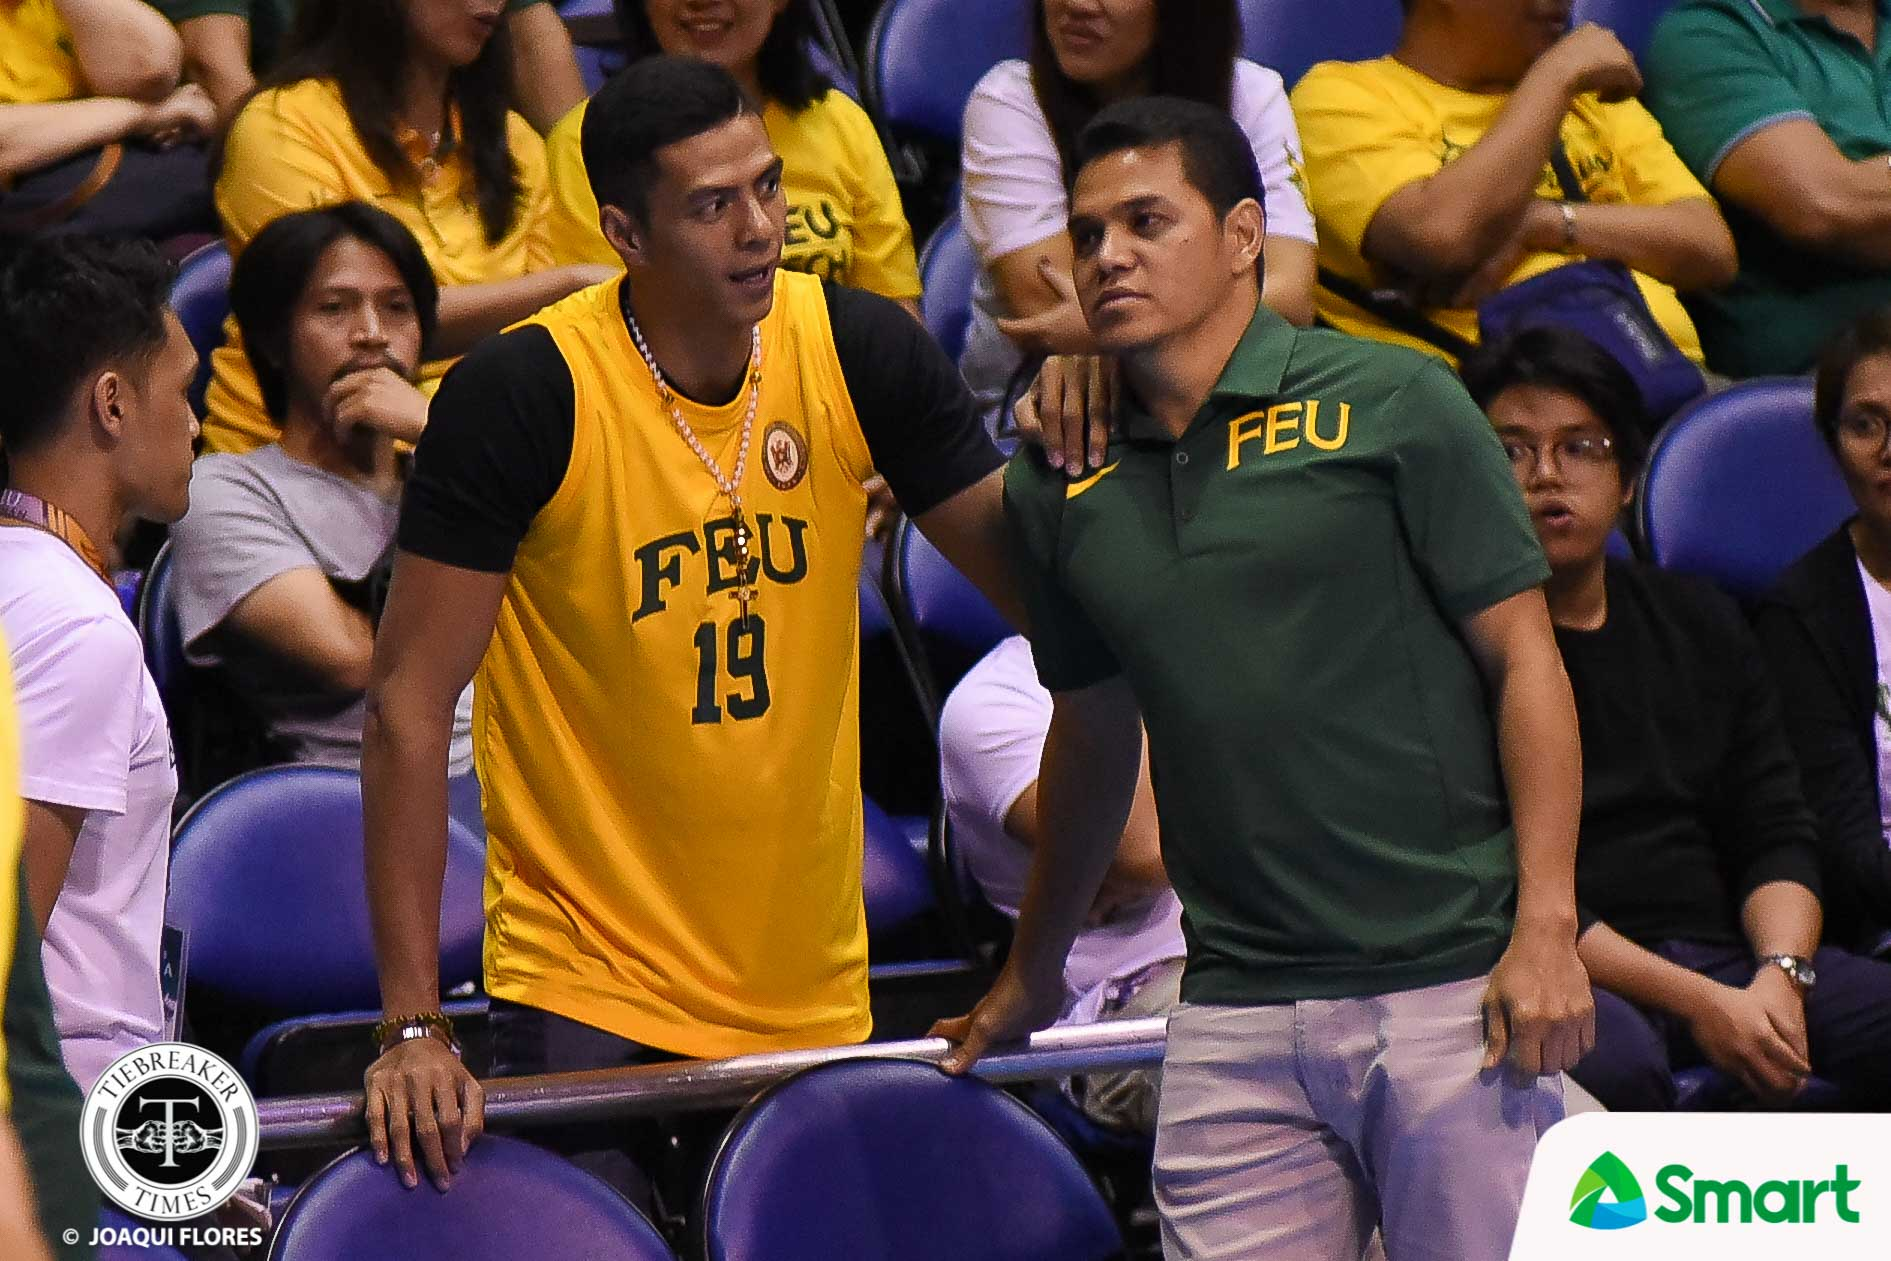 Philippine Sports News - Tiebreaker Times Arwind Santos continues to give back to FEU Basketball FEU News UAAP  UAAP Season 80 Men's Basketball UAAP Season 80 FEU Men's Basketball Arwind Santos Arvin Tolentino